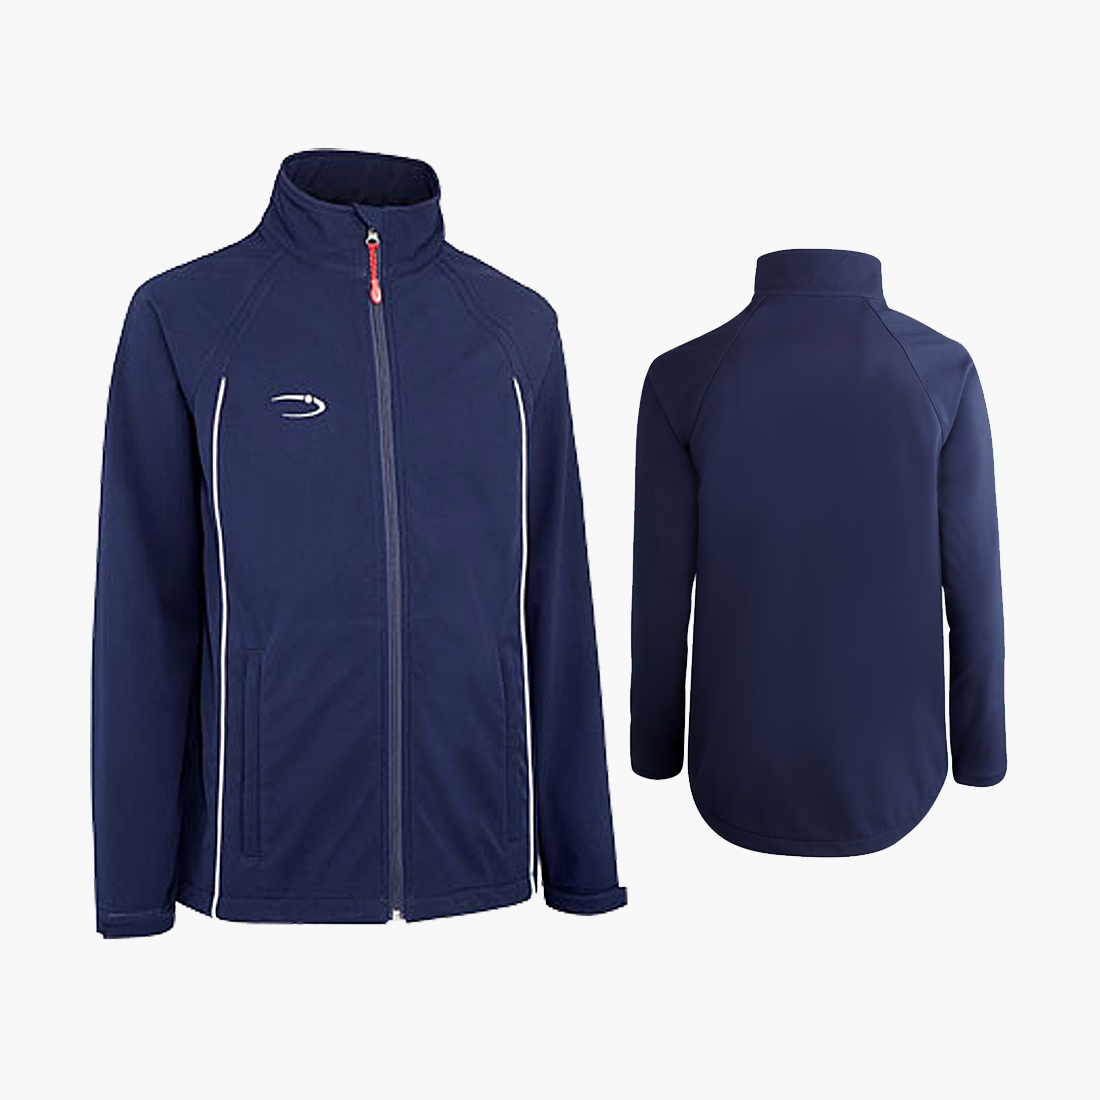 PERFORMASHELL SOFTSHELL JACKET